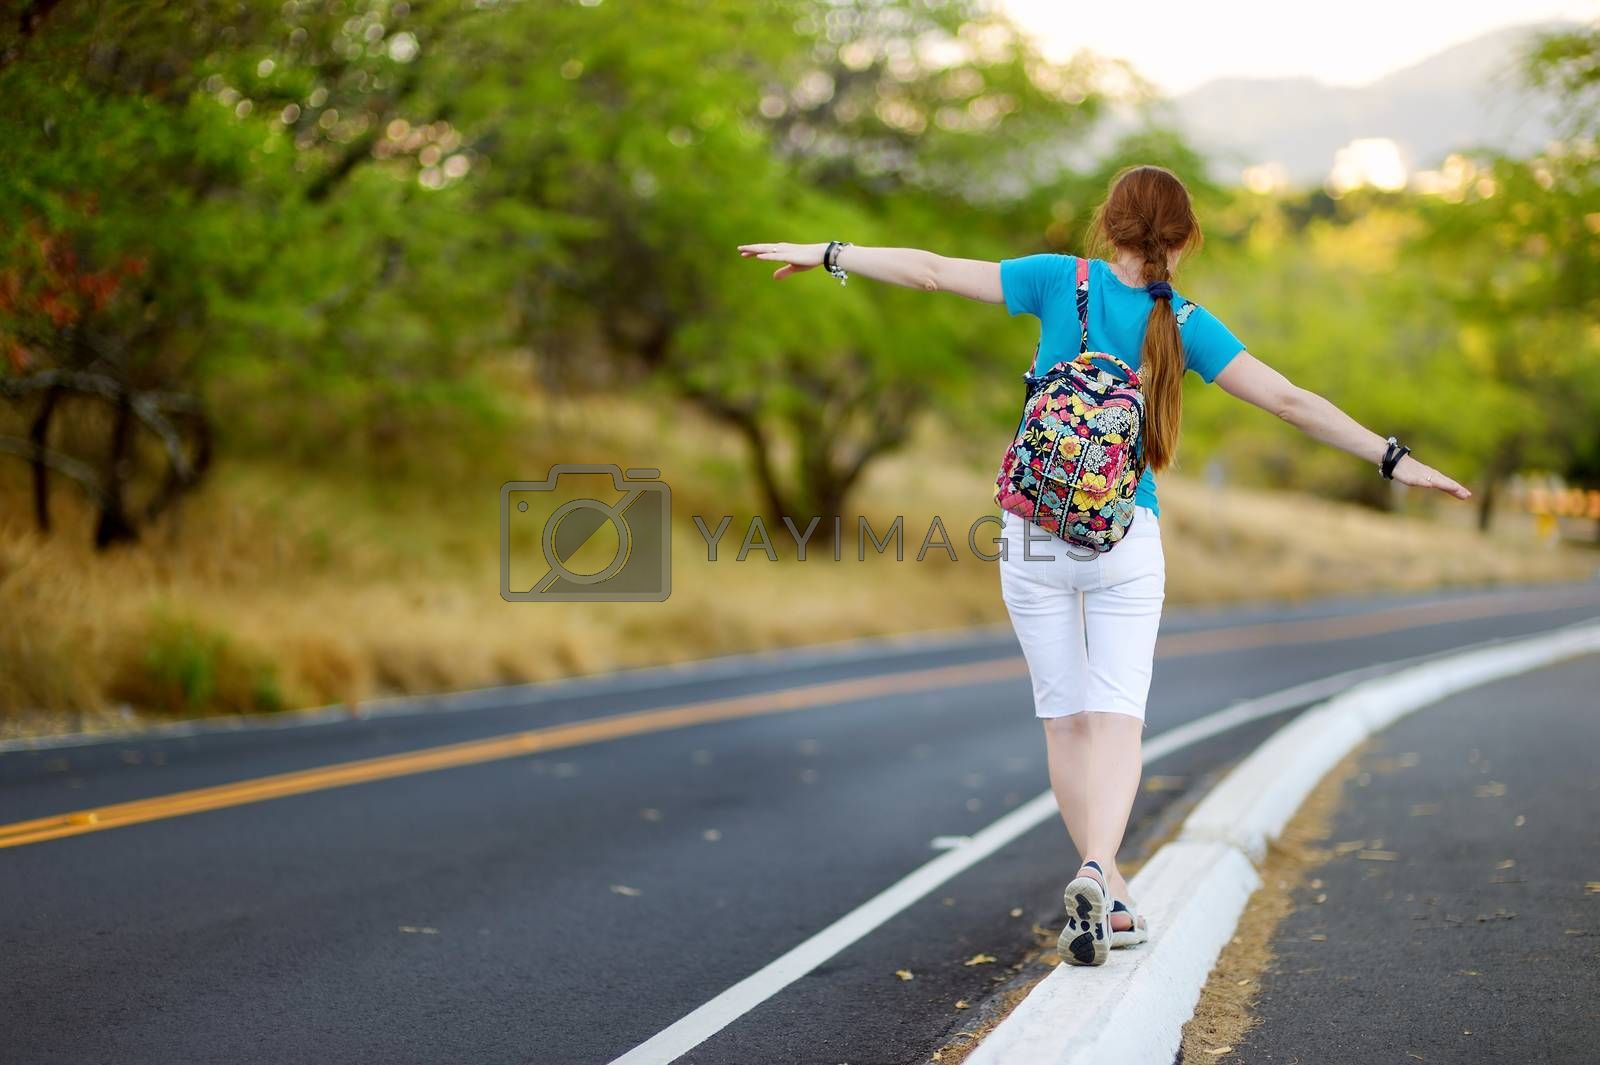 Young tourist with a backpack hitchhiking along a road